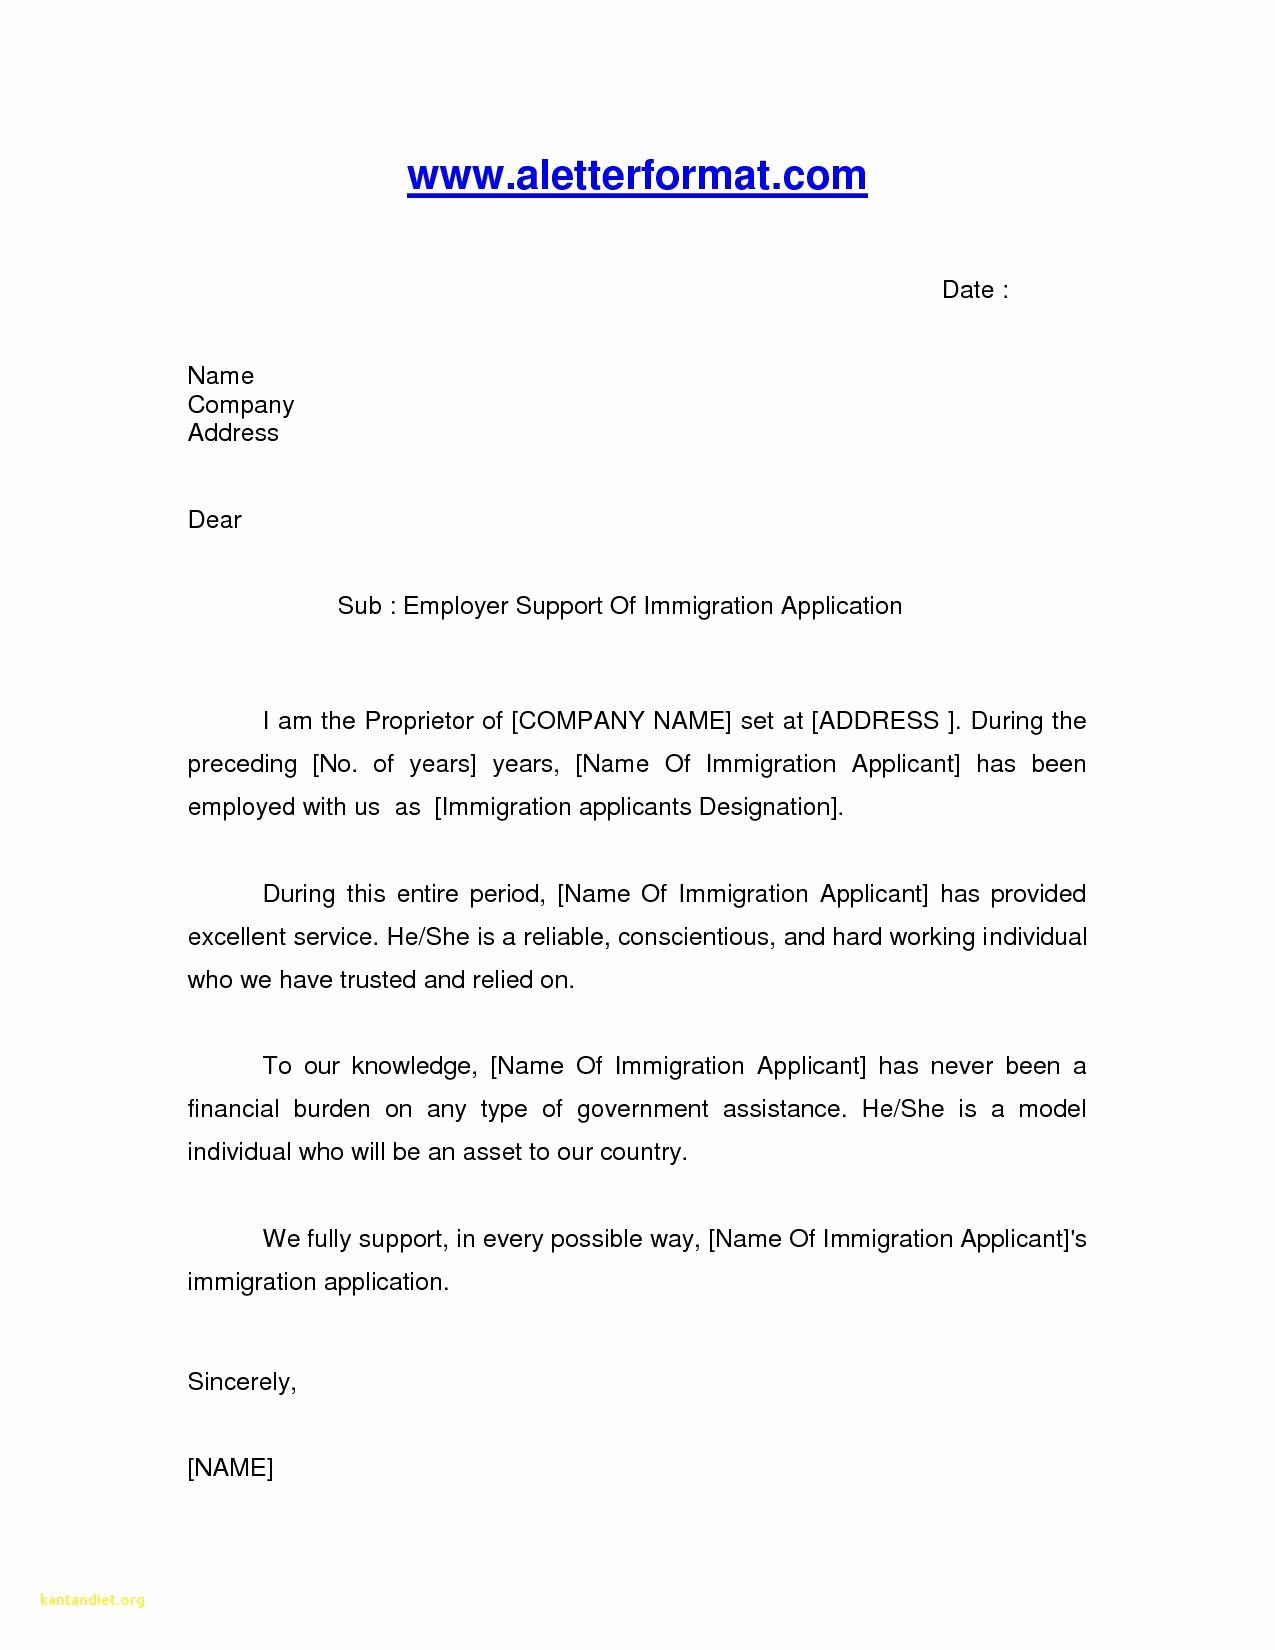 Letter Of Support format Unique Sample Support Letter for Immigration Friend